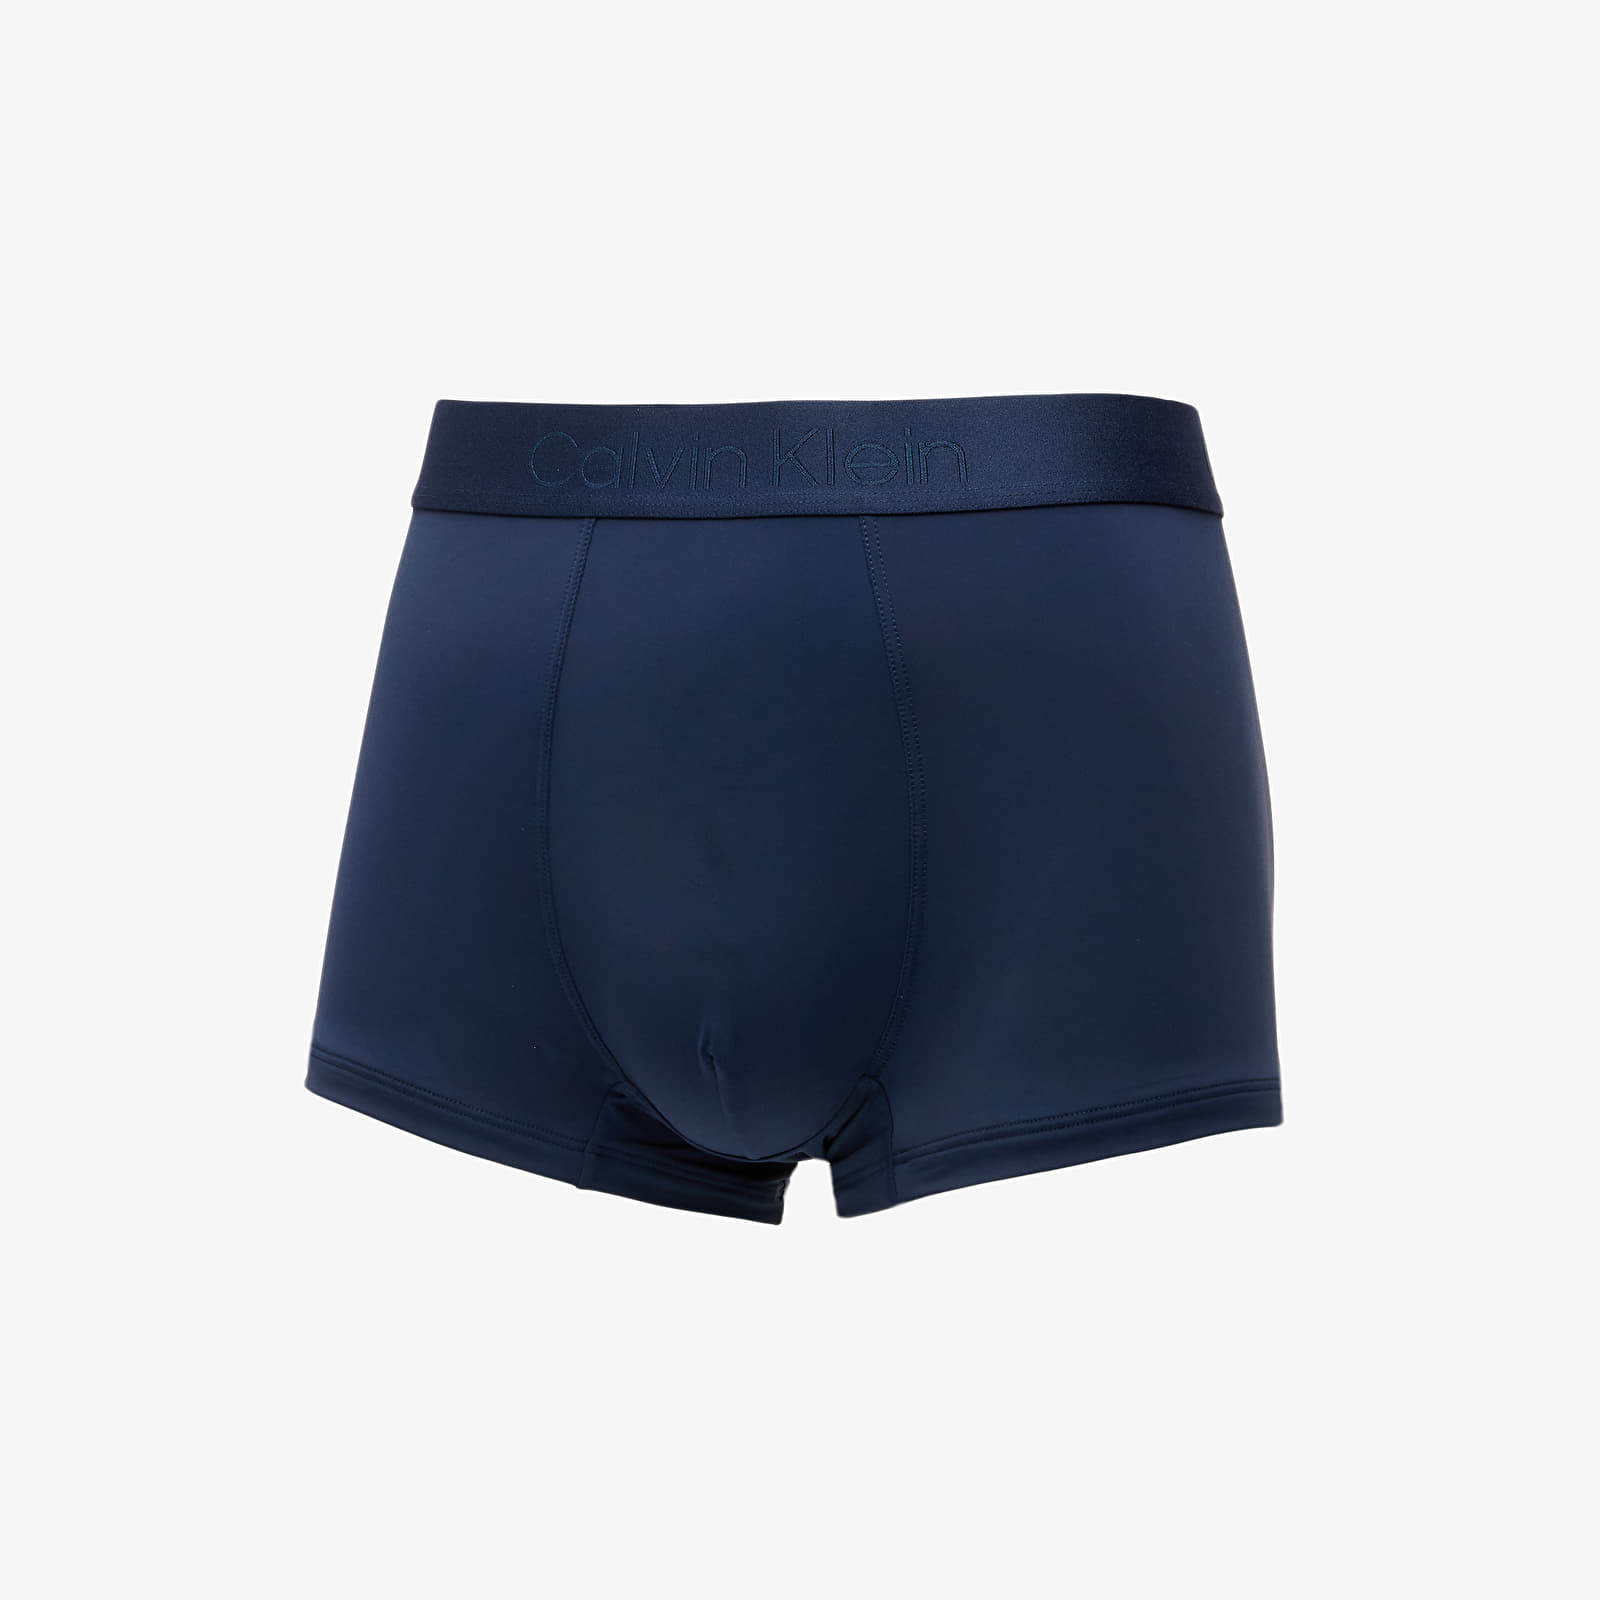 Boxer Calvin Klein Low Rise Trunk Blue Shadow